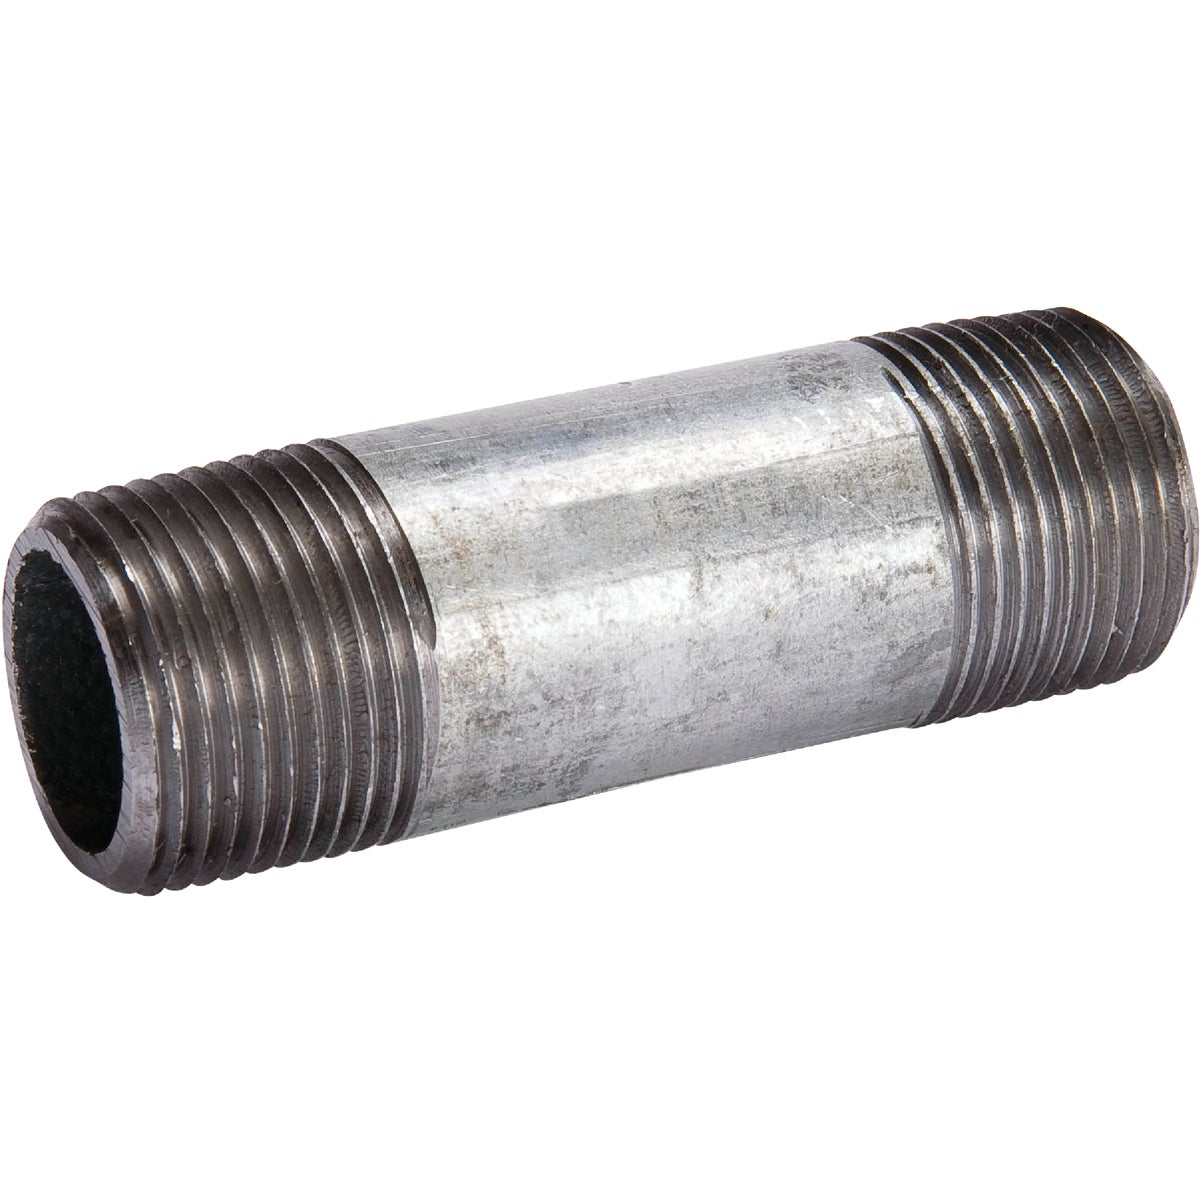 1/4X6 GALV NIPPLE - 10210 by Southland Pipe Nippl